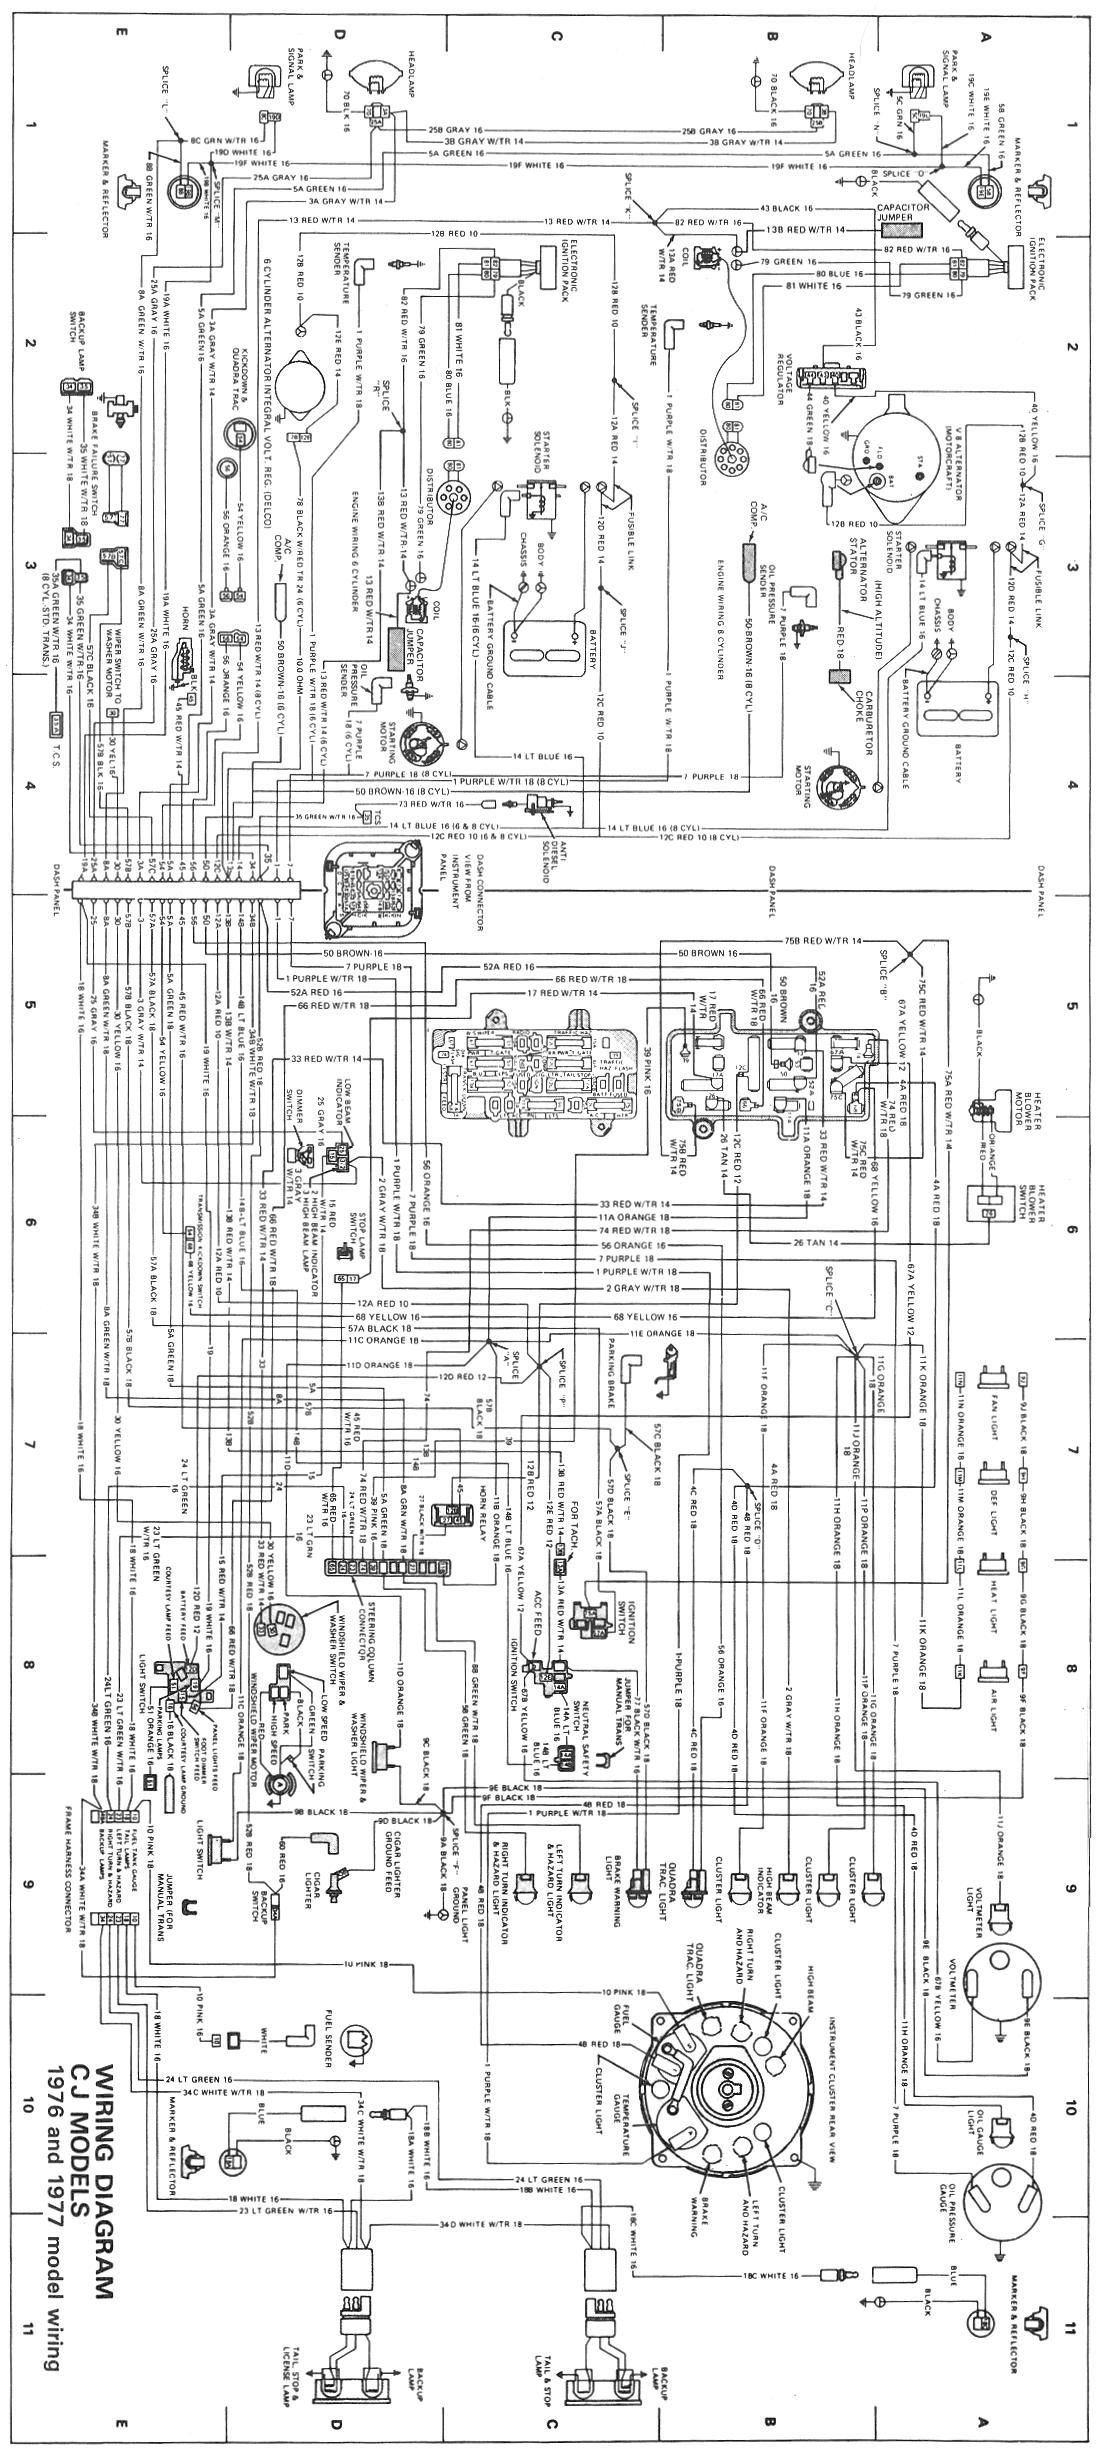 75 jeep cj5 alternator wiring diagram 1964 jeep cj5 light wiring diagram